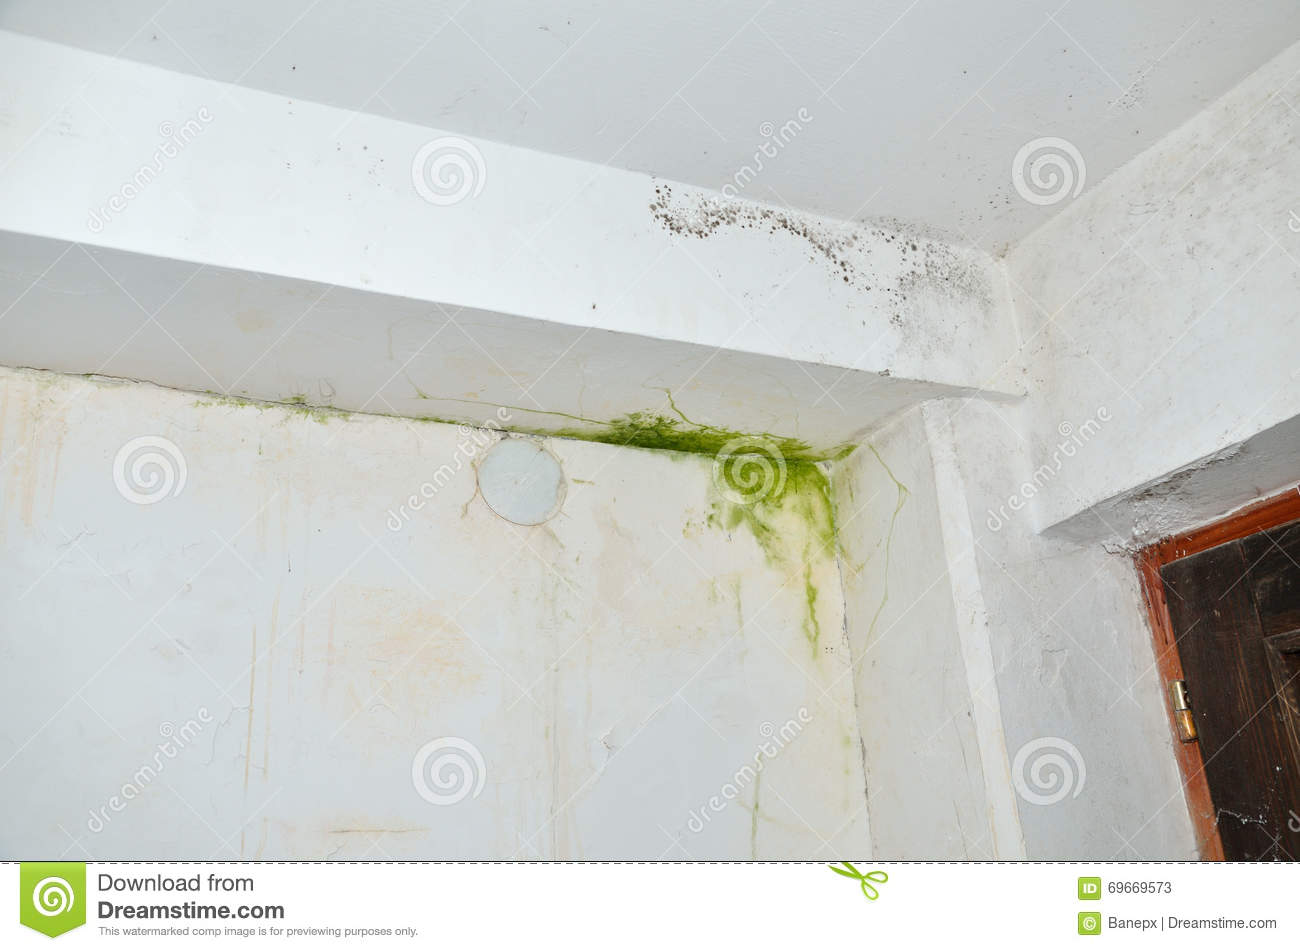 Mold On Wall And Ceiling Stock Photo Image 69669573